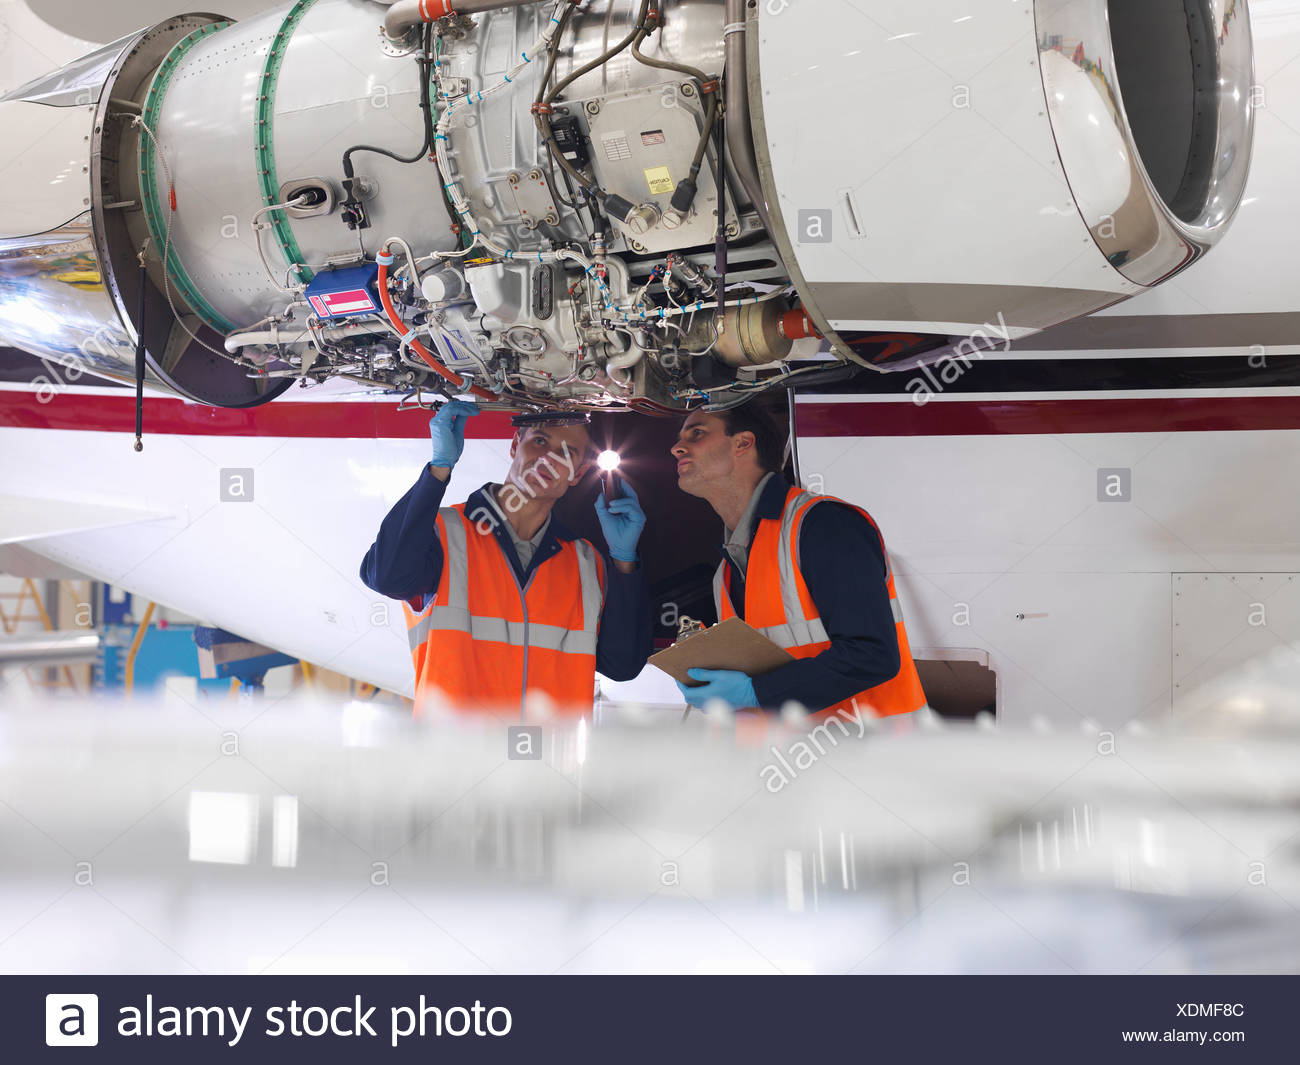 Engineers inspect a jet engine - Stock Image